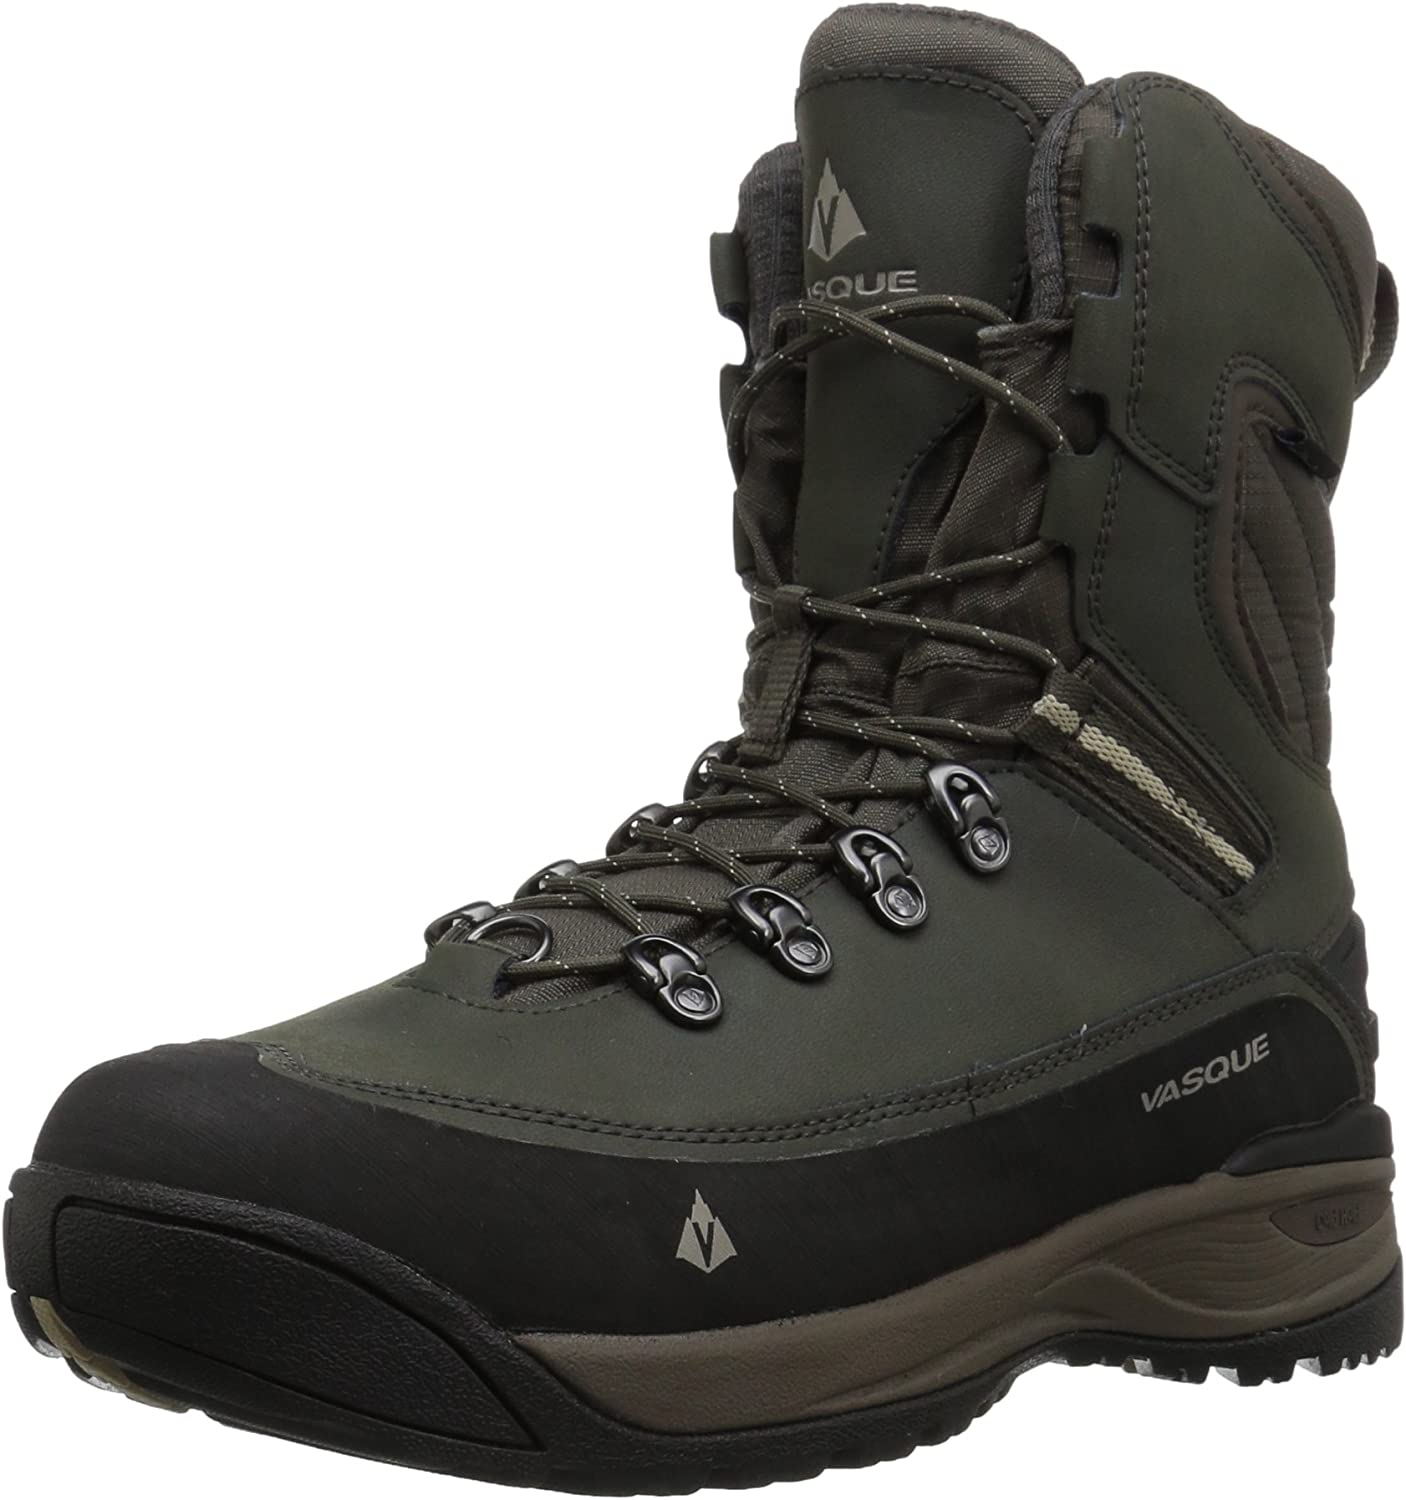 Winter hiking boots